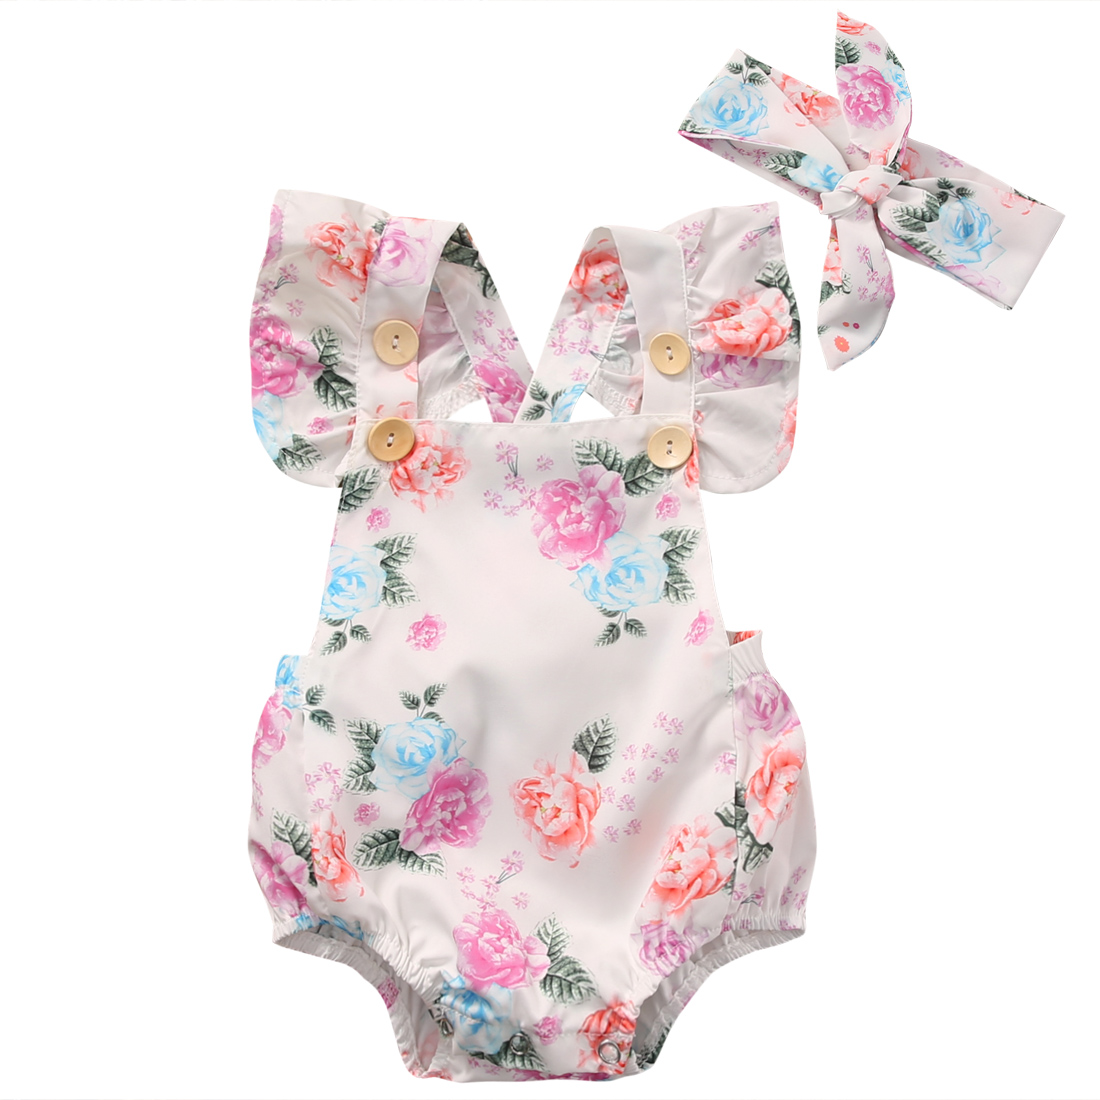 Cute Newborn Infant Baby Girl Romper Bodysuit Jumpsuit Headband 2Pcs Set Outfits